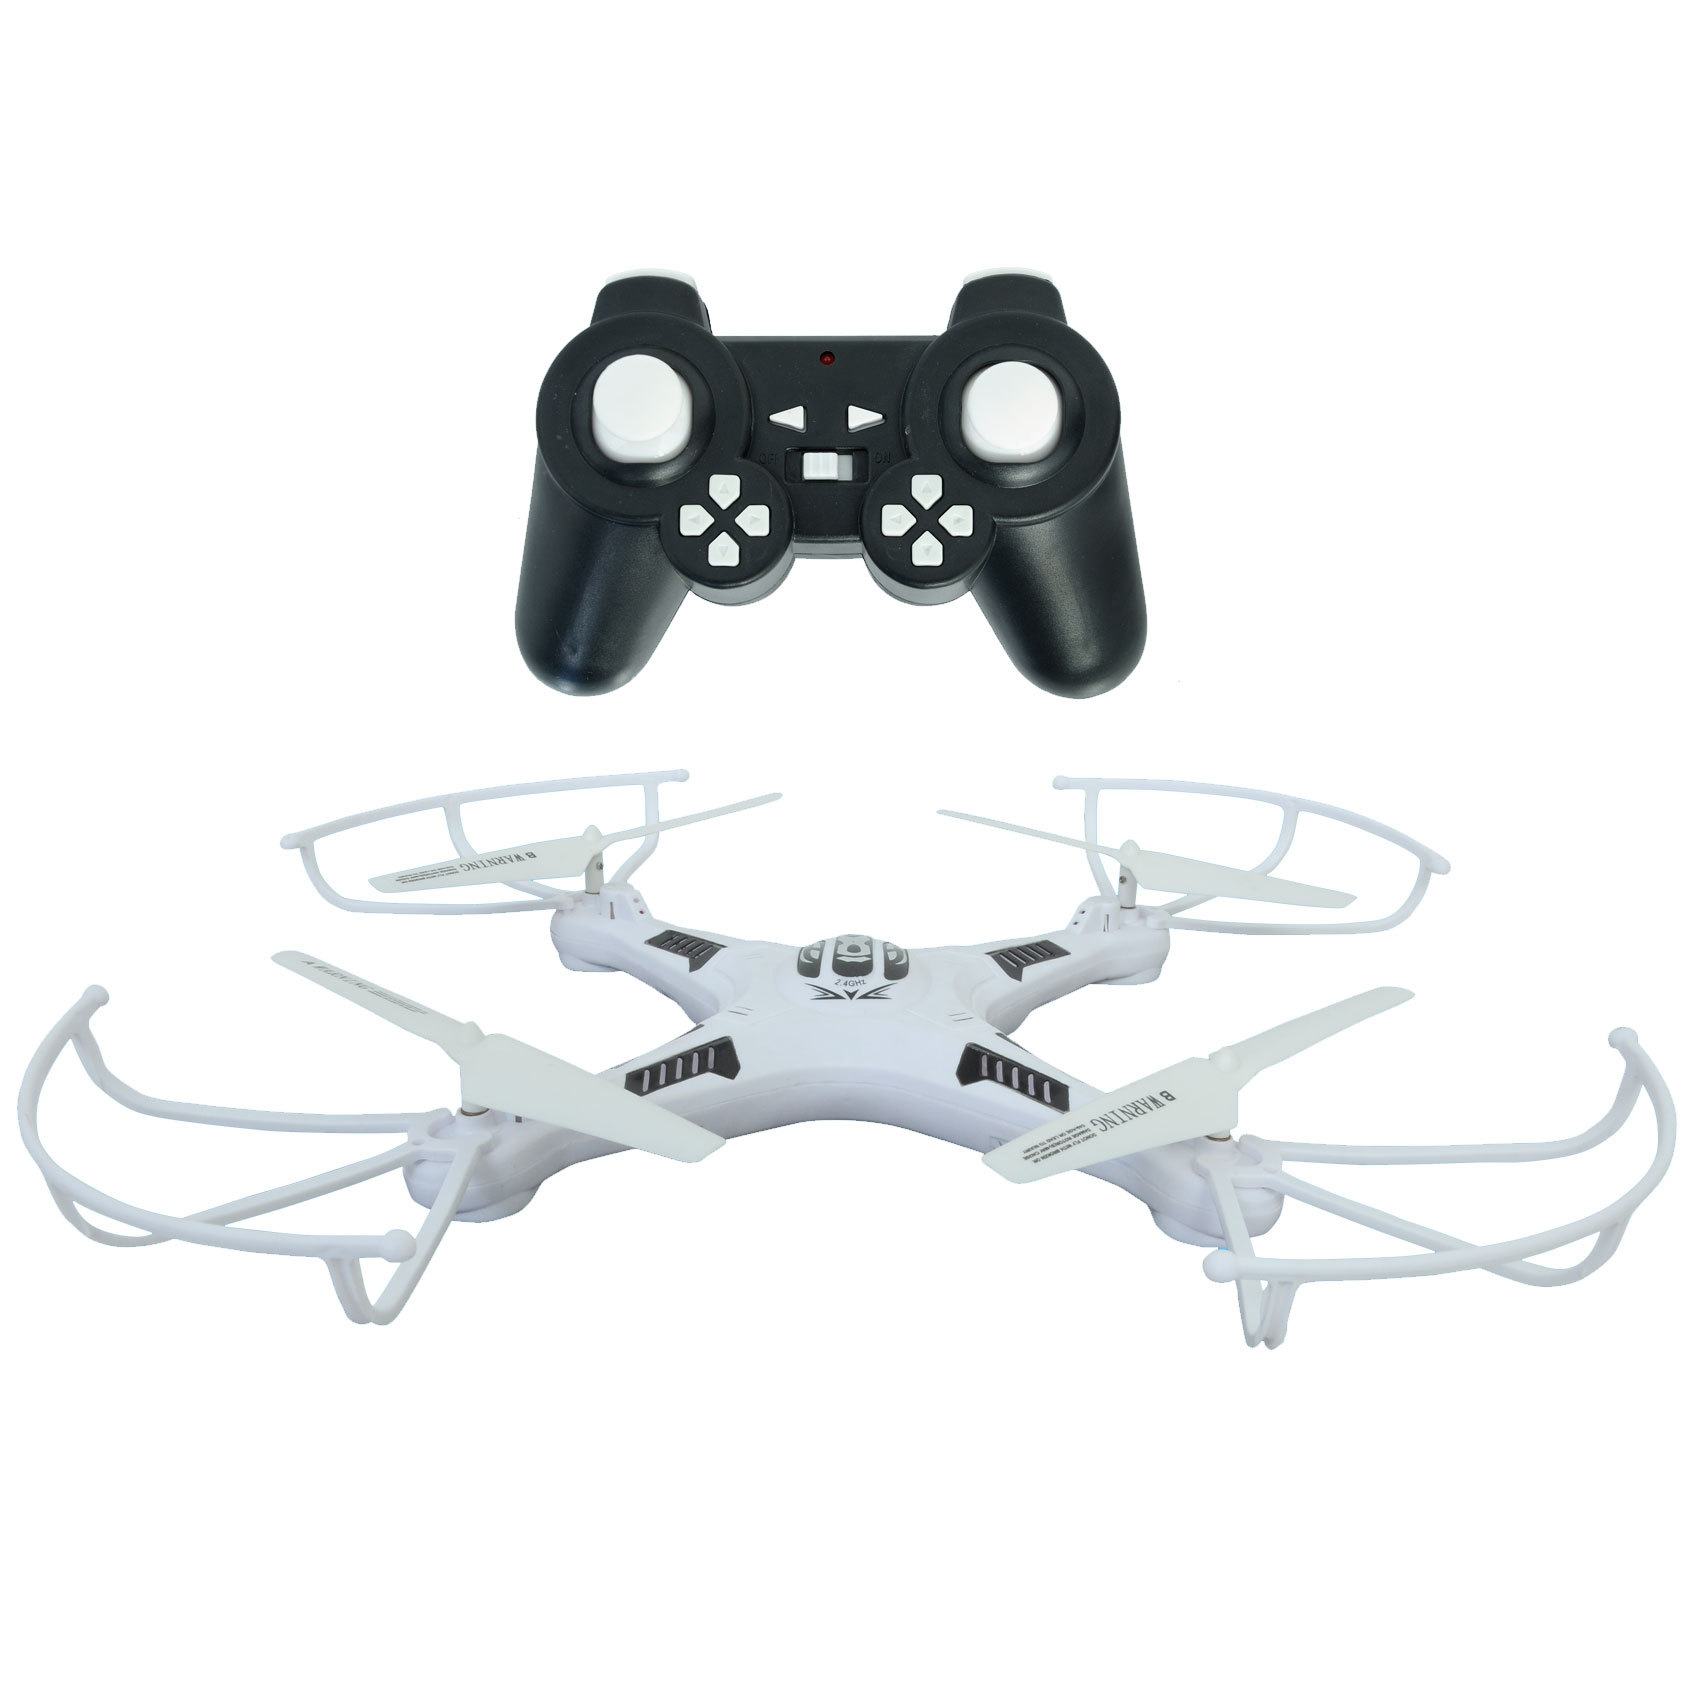 DRONE RC 4AXIS FLYING W USB